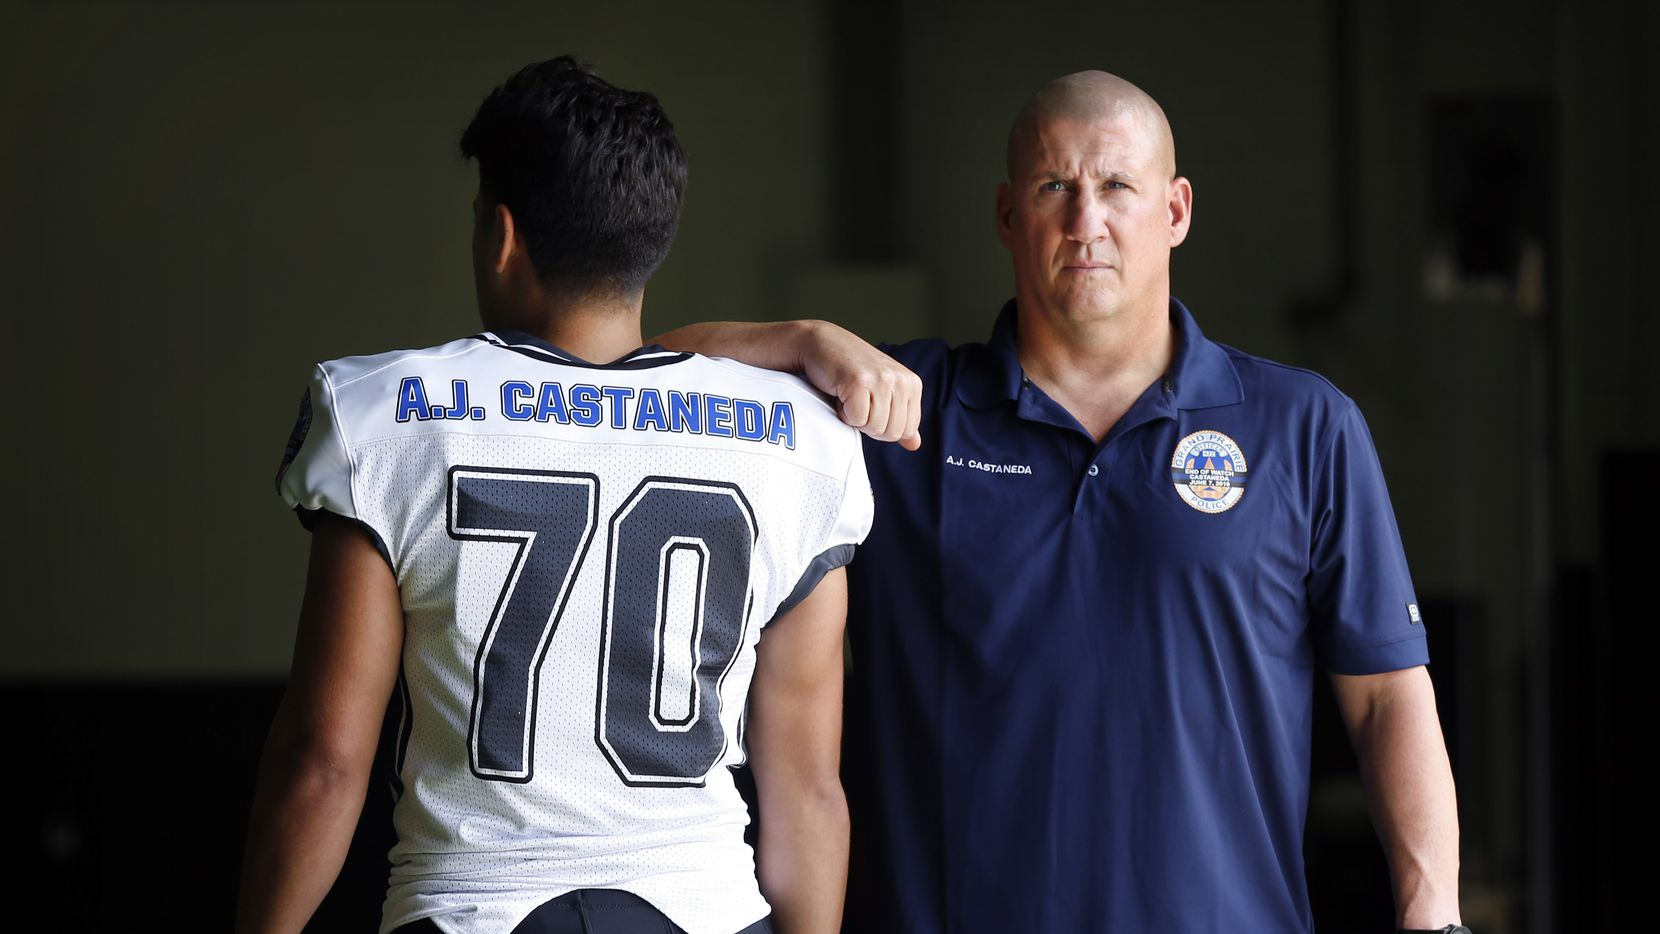 Arlington Martin senior linebacker Samuel Ledesma and head coach Bob Wager model the uniform and polo shirt the team will honor Friday in memory of Grand Prairie police officer A.J. Castaneda, who was killed in the line of duty in June. The special uniforms will have Castaneda's End of Watch badge on the jersey sleeve, and they will also have Castaneda's name on the back of the jersey. Martin will also have a decal on their helmets that recognize Castaneda. There will be a special ceremony before this Friday's game between Arlington Martin and Arlington to recognize Castaneda. Wager coached Castaneda when he was an assistant coach at Arlington Sam Houston and also when he was the head coach at Tolar High School. Wager also spoke at Castaneda's funeral. They are photographed at the school's indoor facility in Arlington, Texas, Tuesday, October 15, 2019.